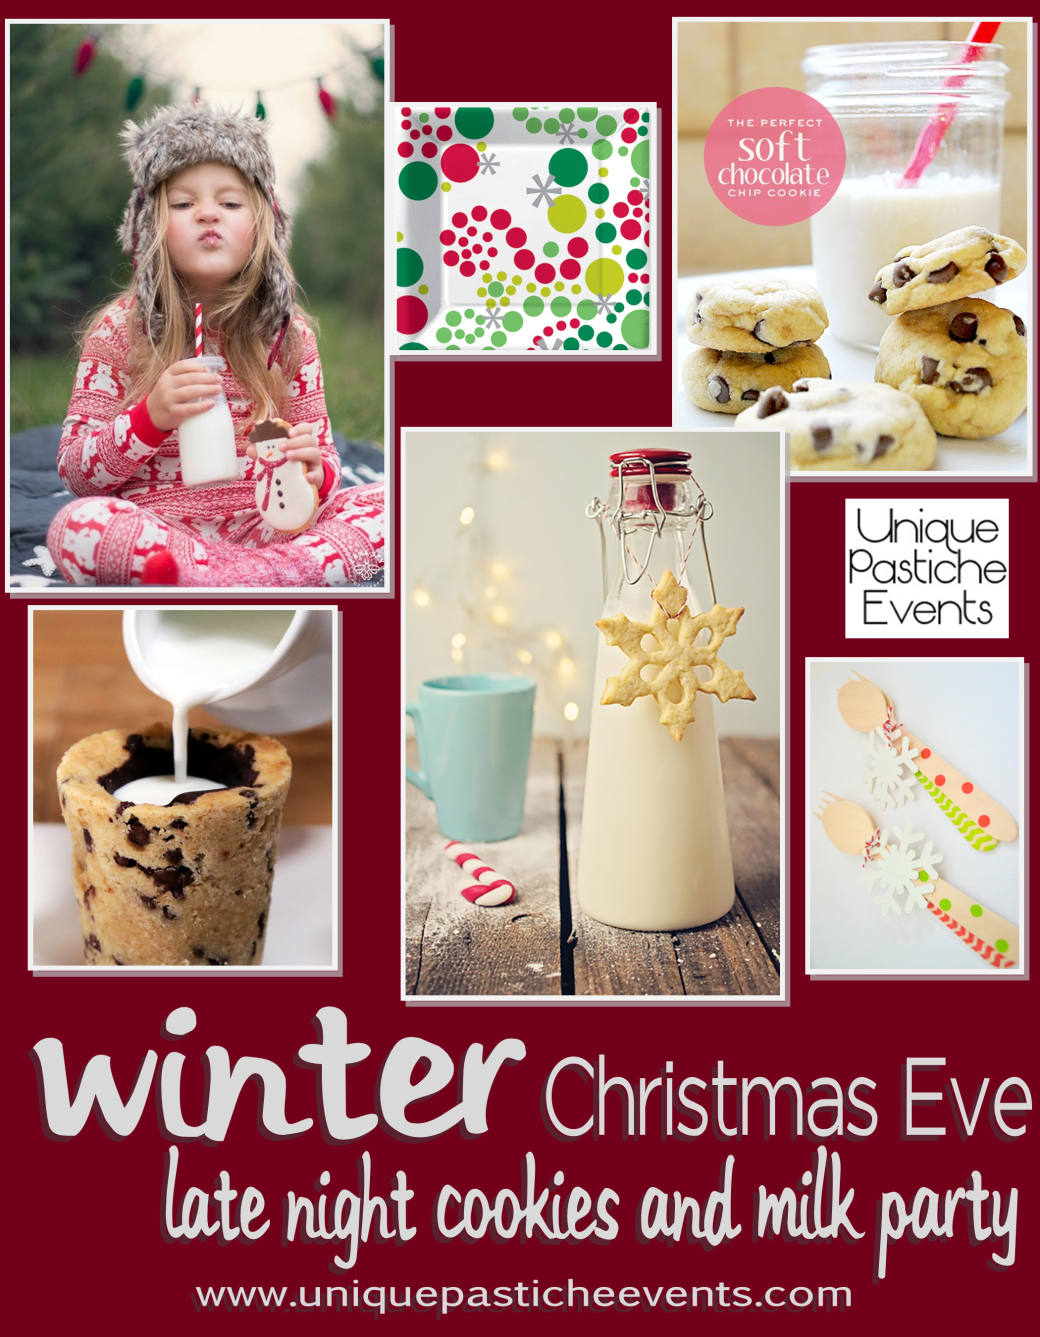 Christmas Eve Cookies and Milk Party Ideas by Unique Pastiche Events